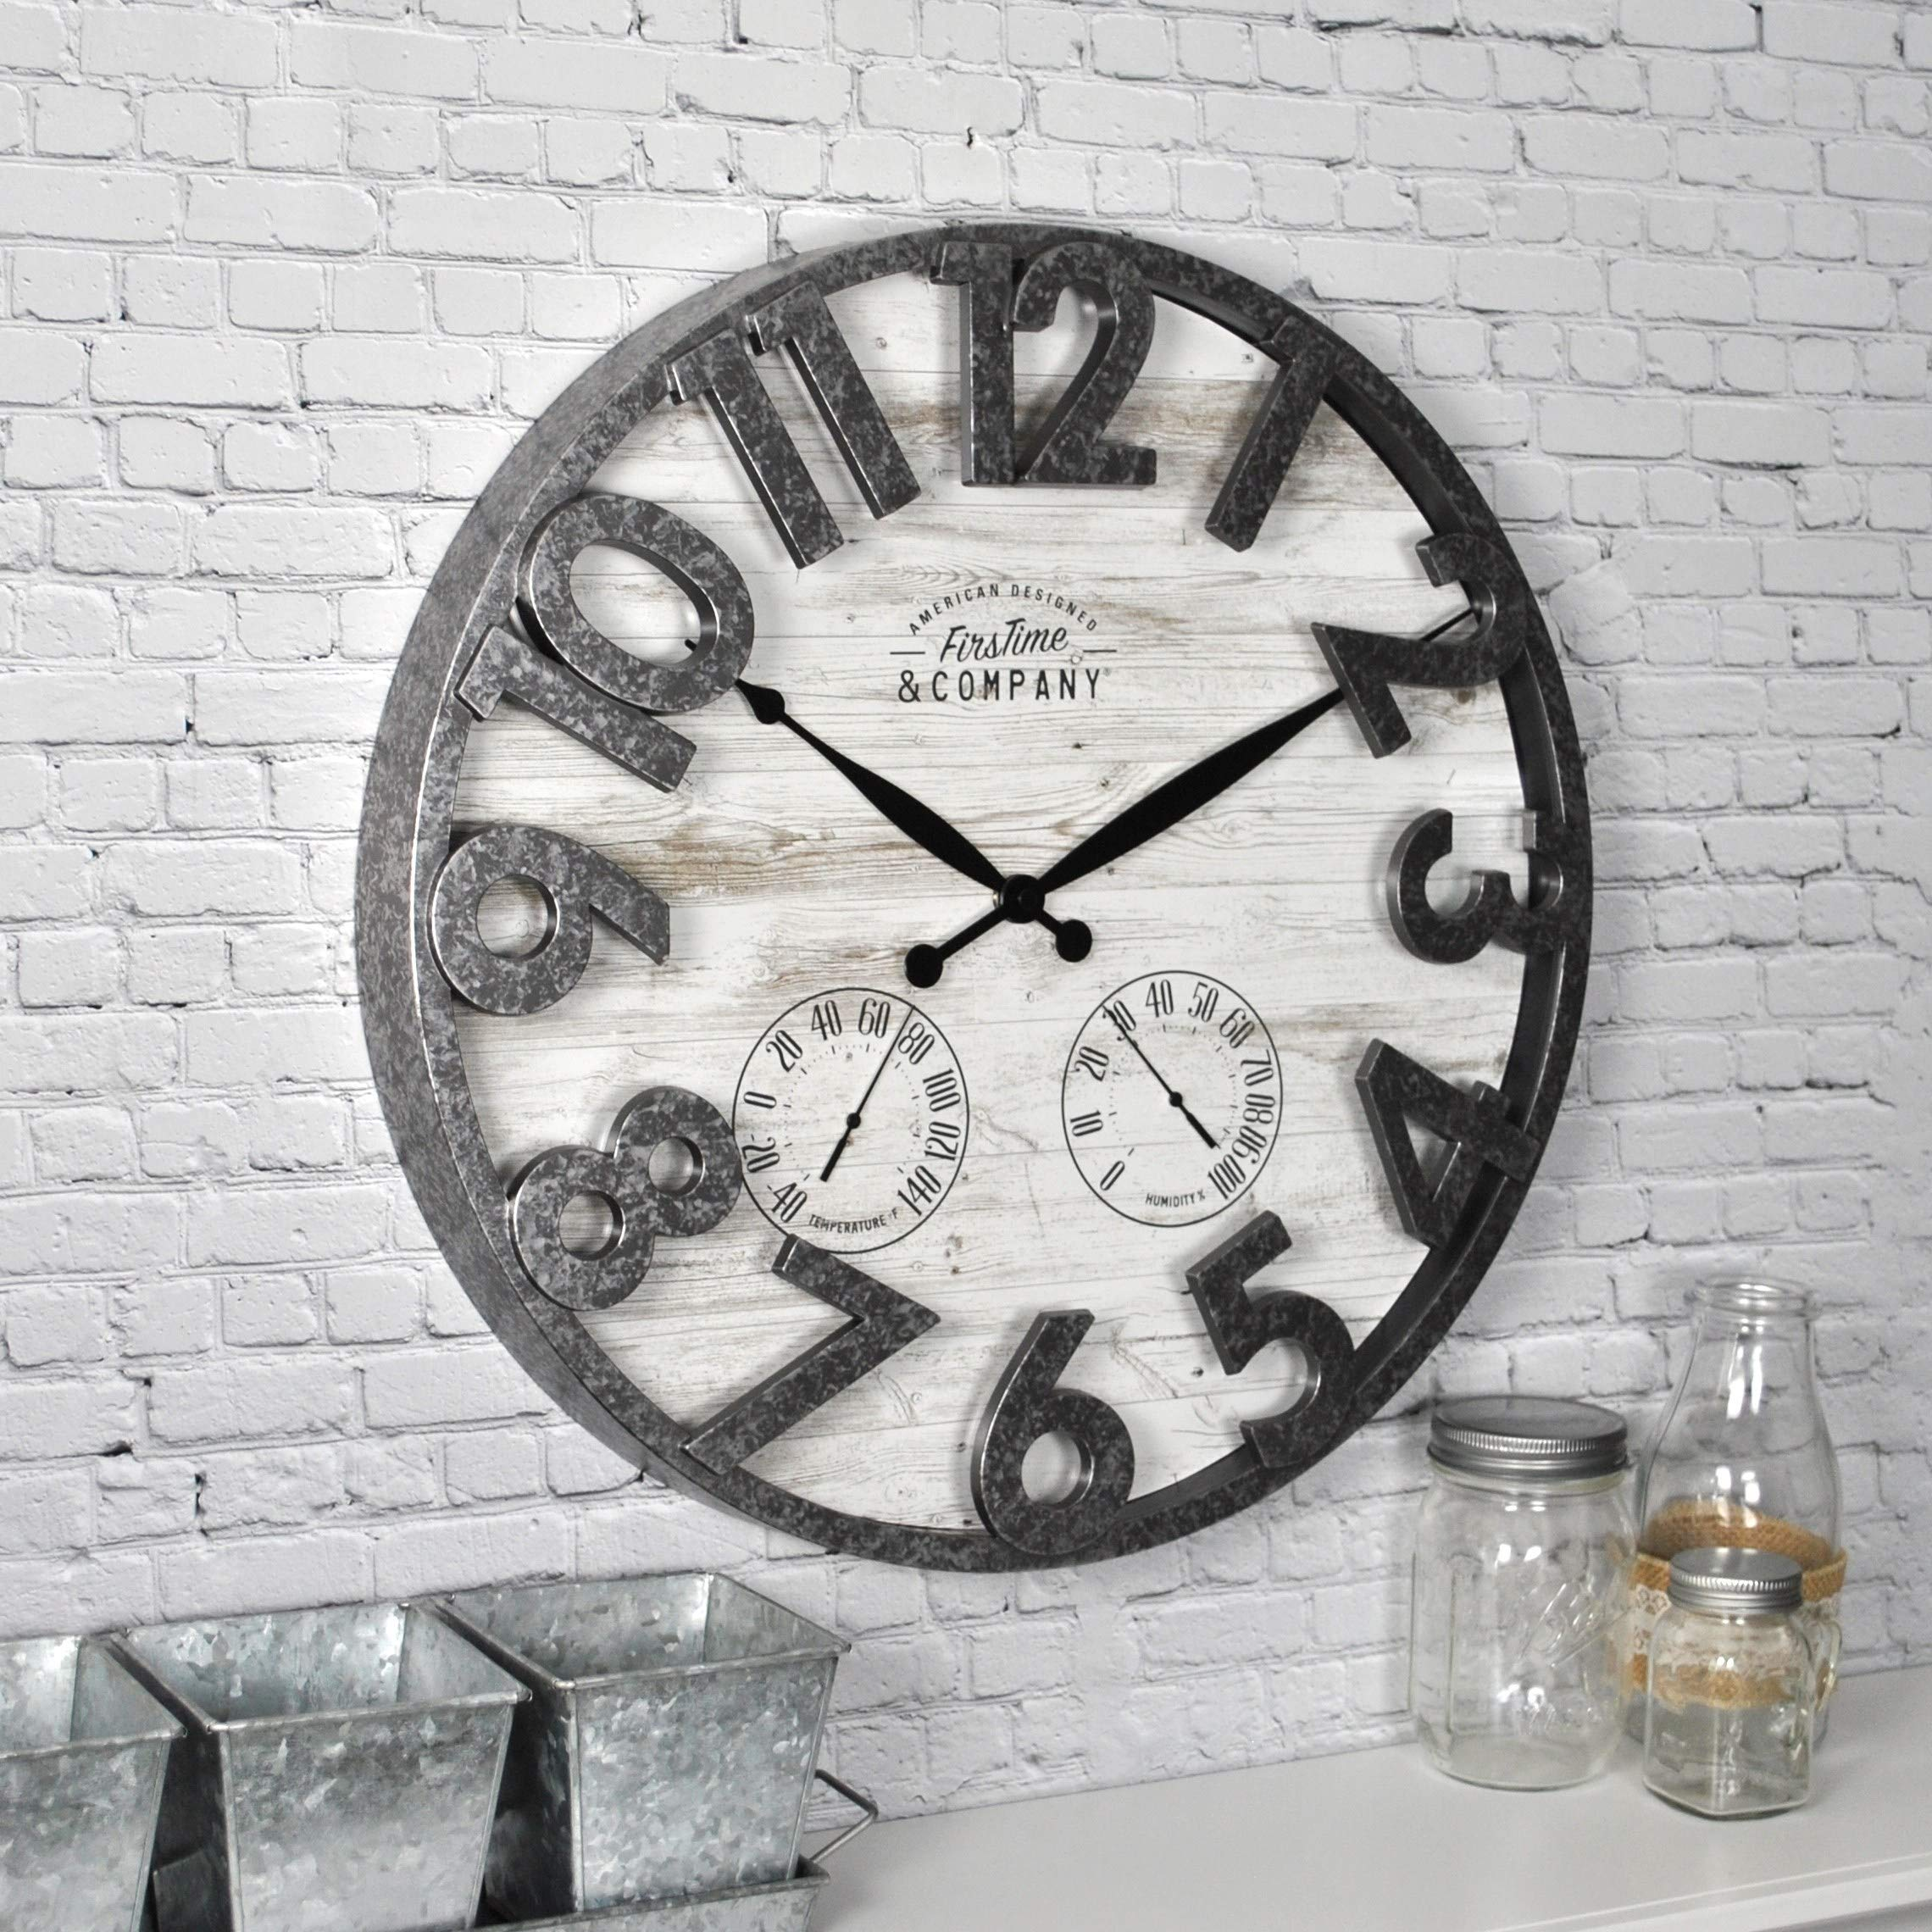 MISC Shiplap Wall Clock Distressed Background Large Numbers Thermometer Hygrometer Hanging Indoor/Outdoor Timepiece, 18'' Round